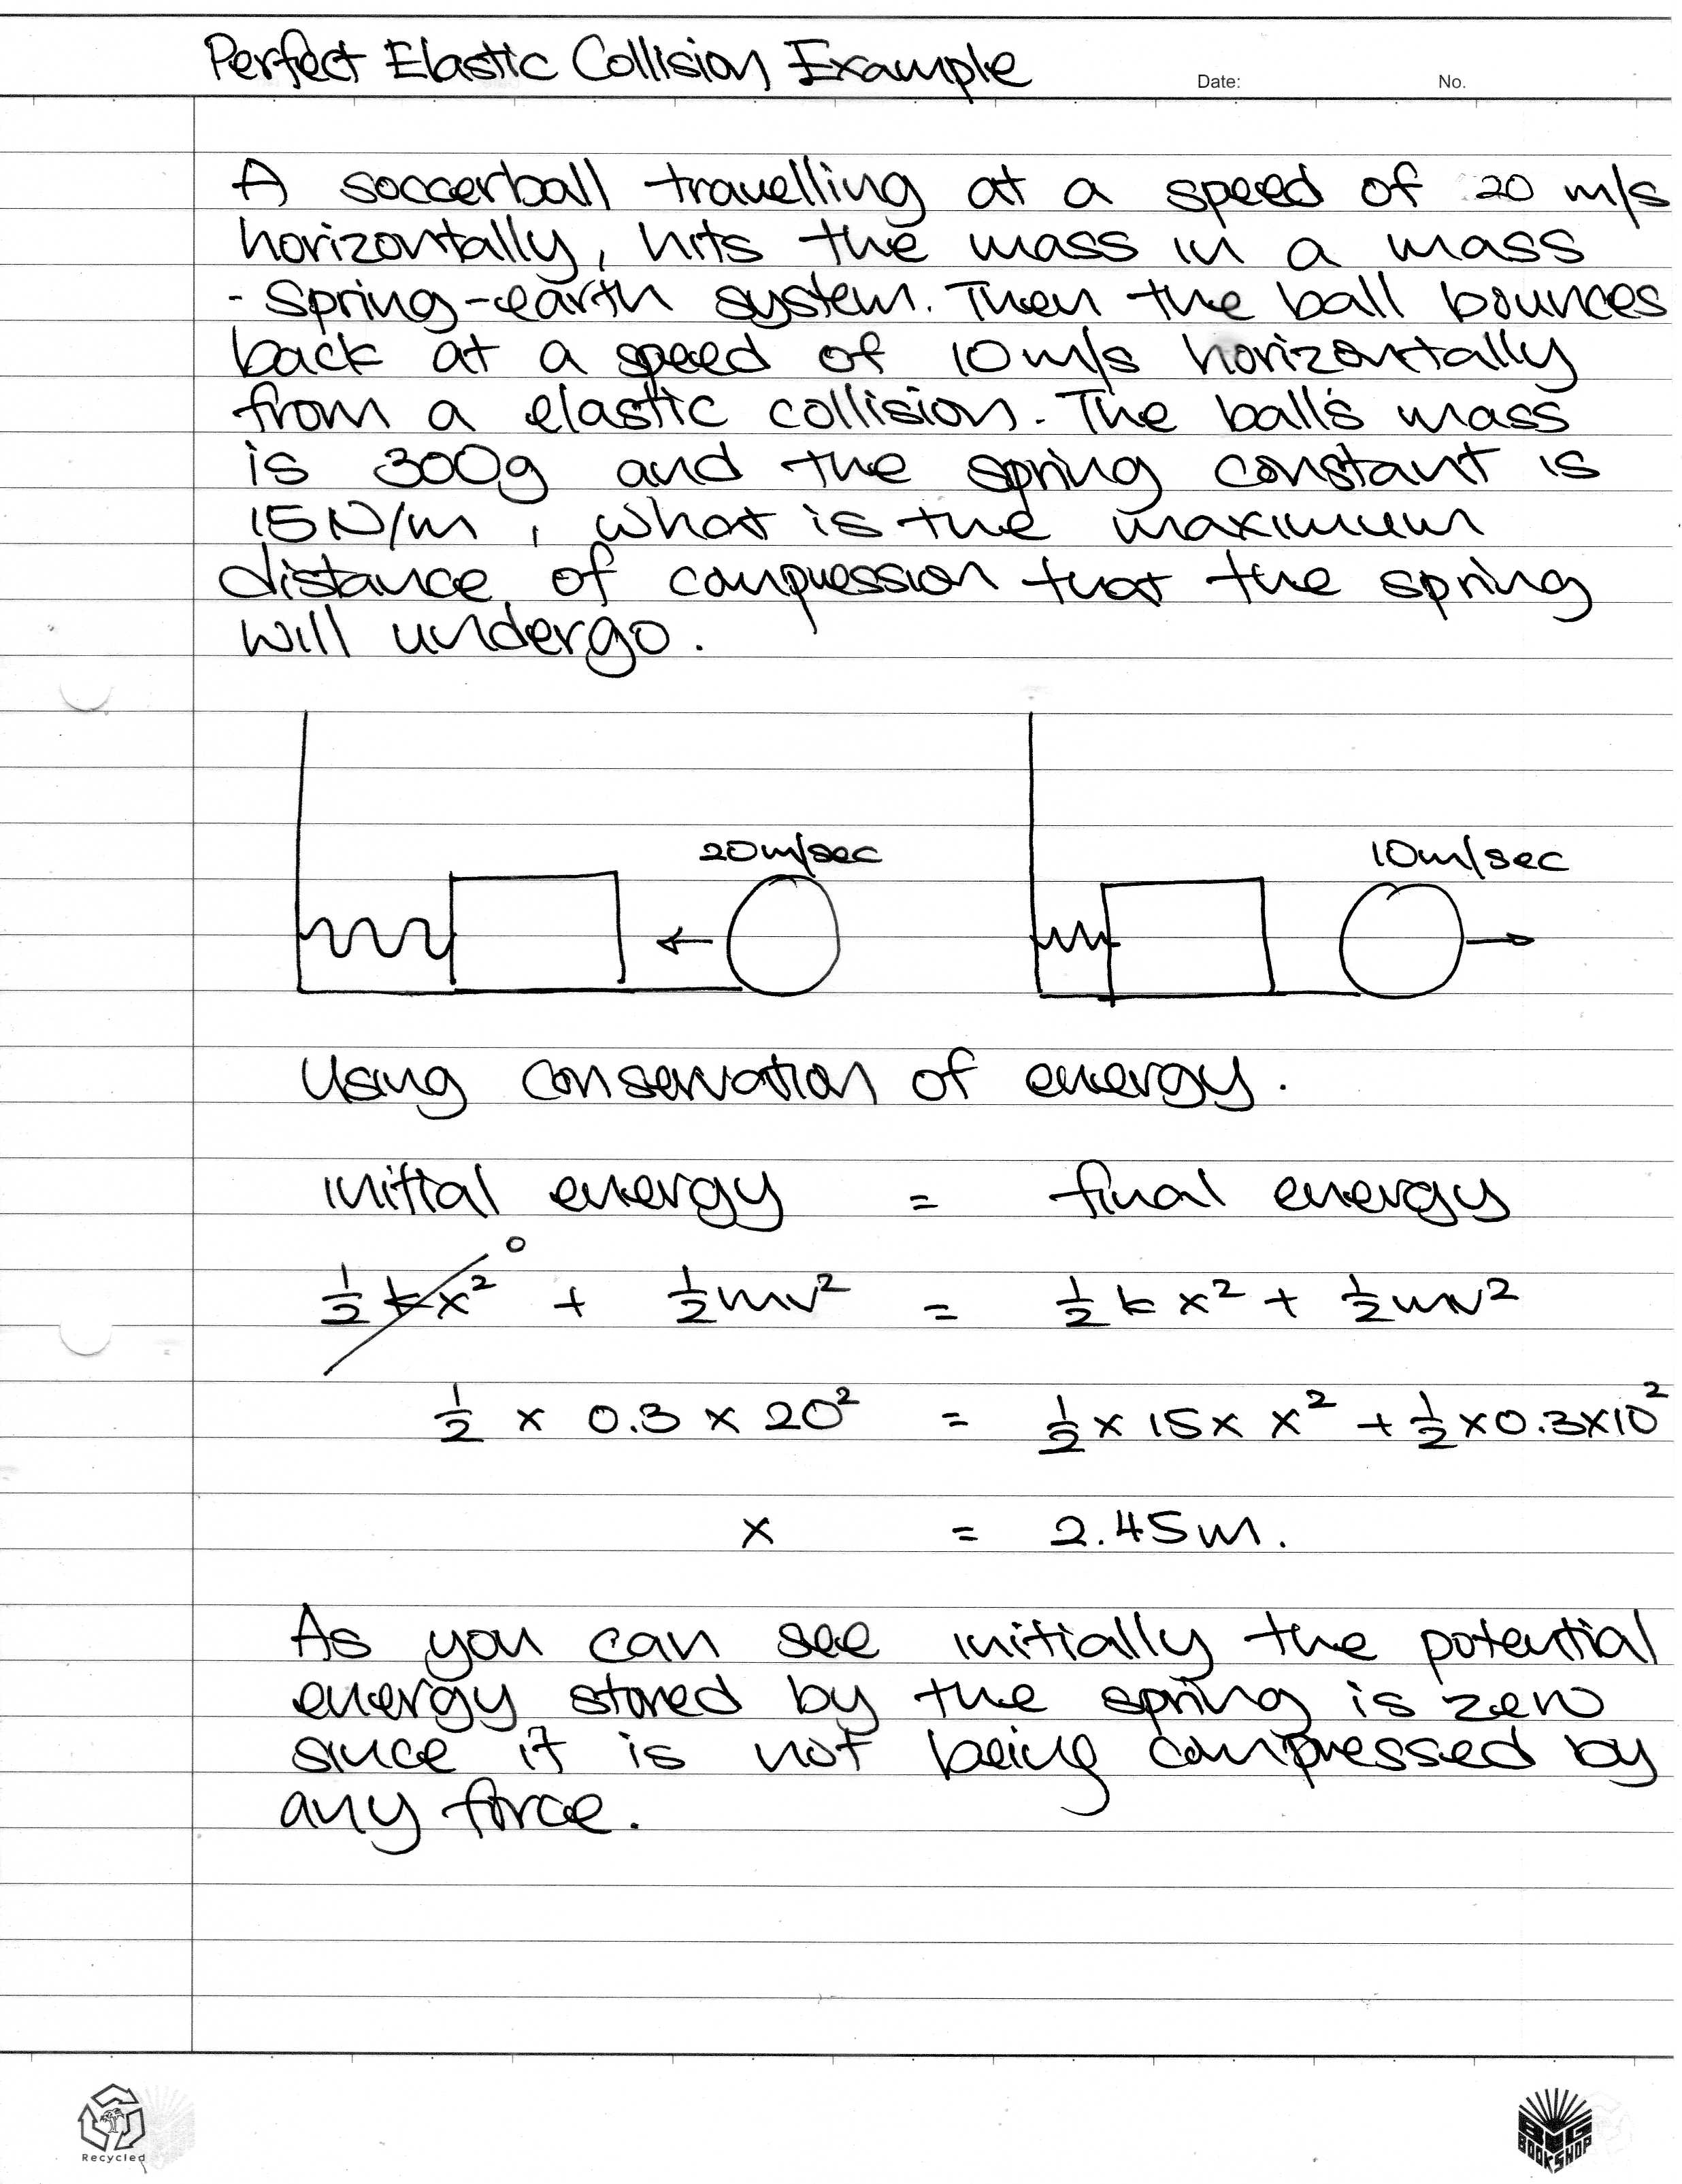 essay about momentum The grade 12 physical science learners at penryn college were tasked with carrying out an experiment to investigate the effect of collisions on momentum different mass pieces (500g 1kg and 15kg) were dropped on a moving trolley and the learners observed the velocity of the trolley before the mass.